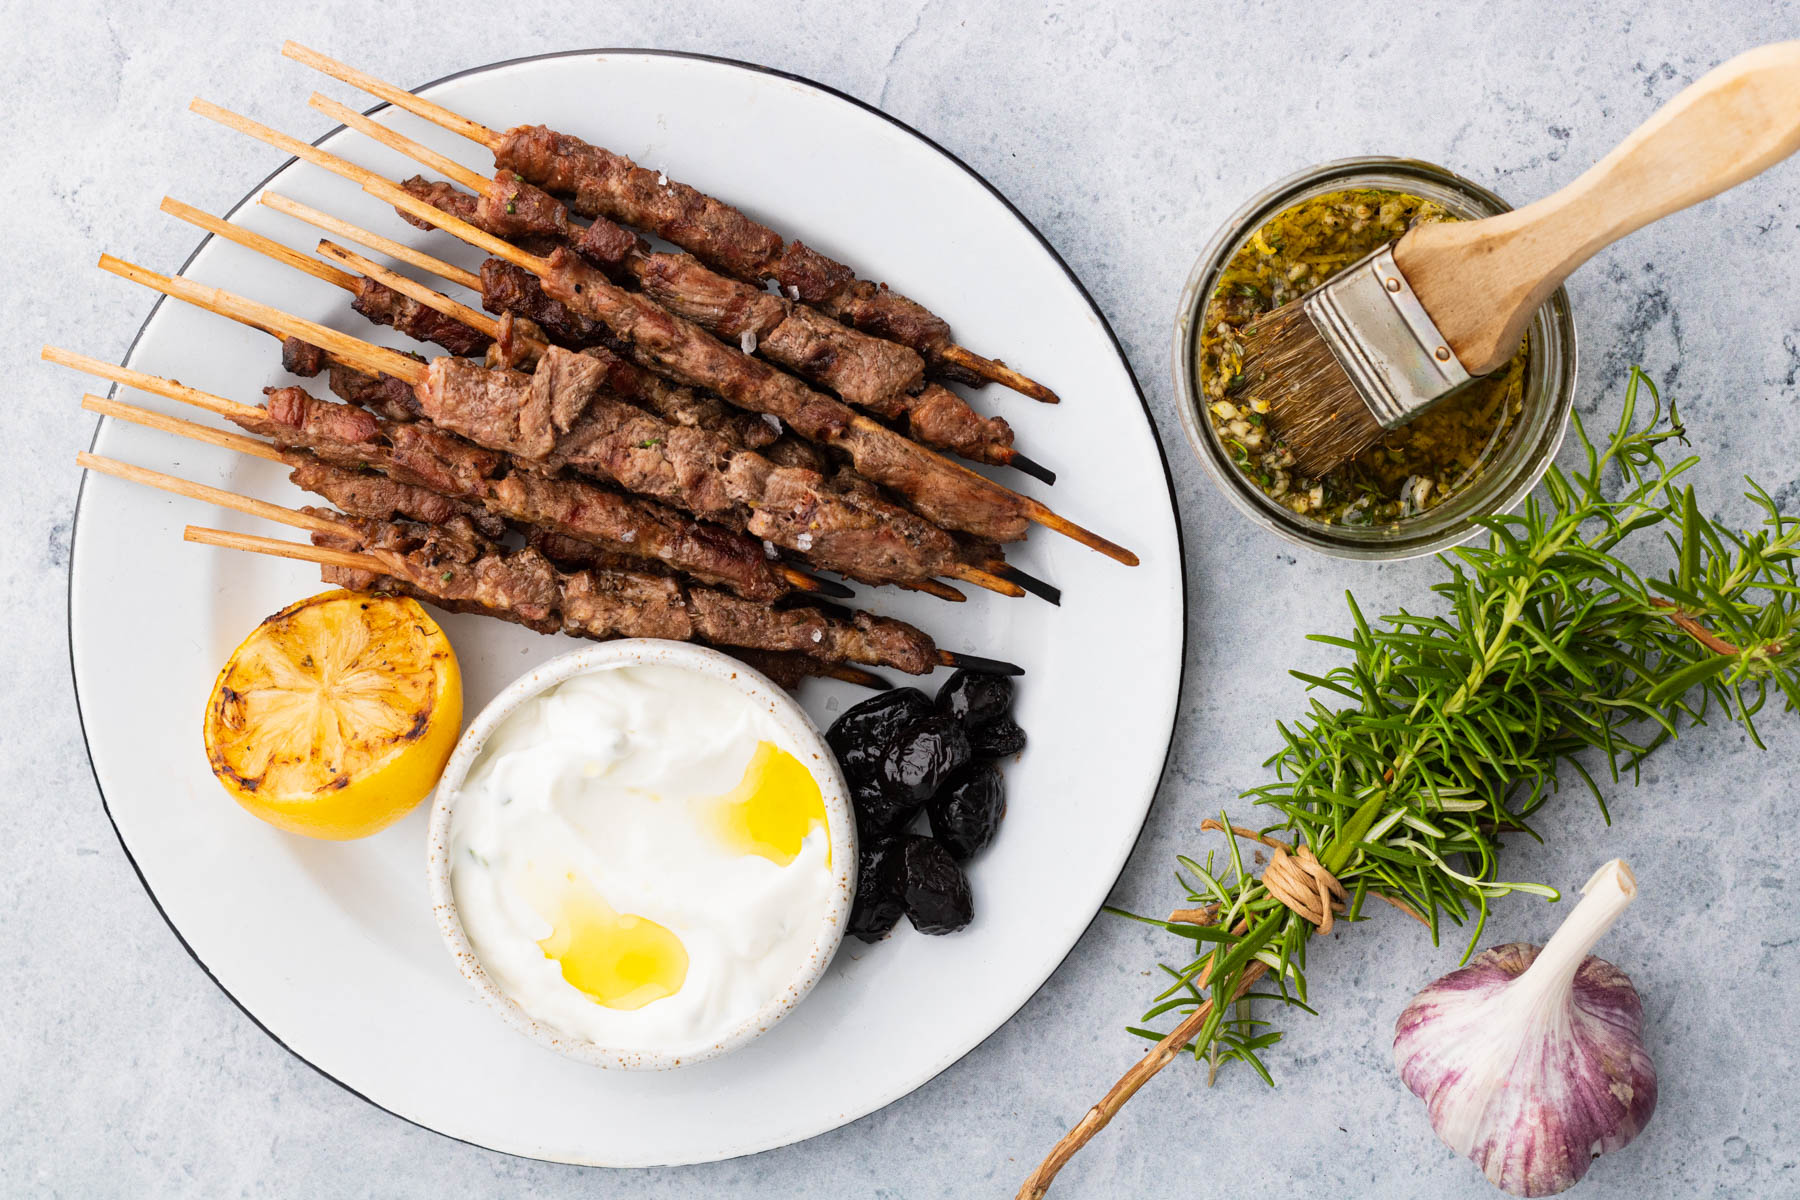 Grilled spiedini skewers grilled lemon half and tzatziki sauce on a white serving platter